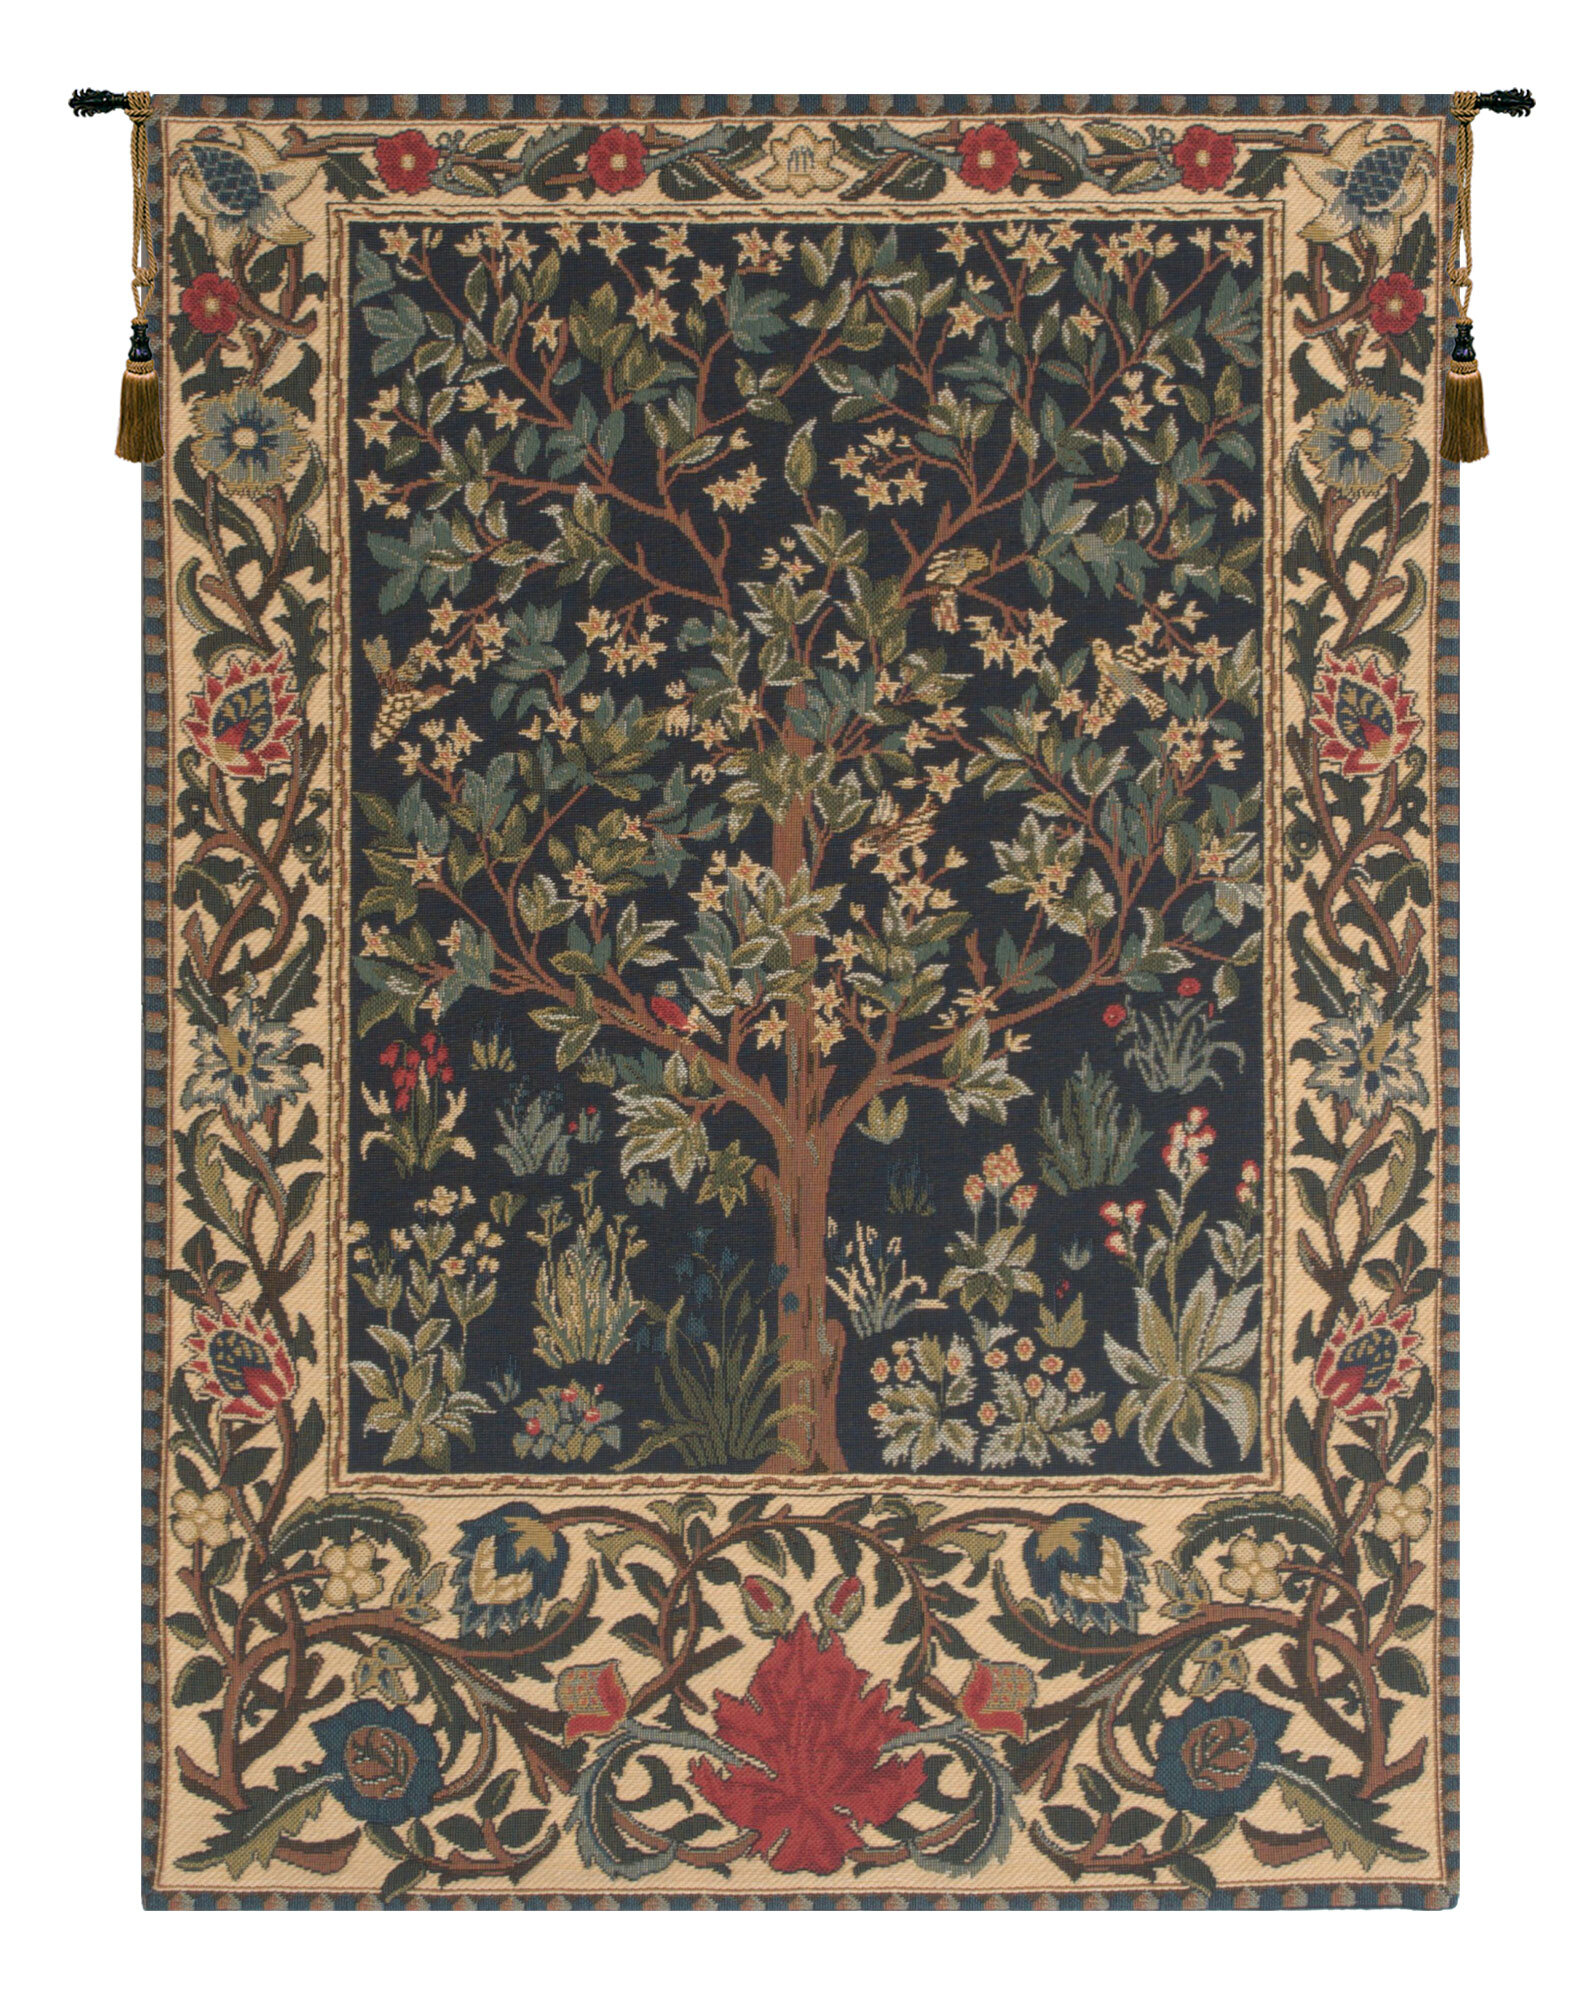 Rod Tan Tapestries You'll Love In 2021 | Wayfair In Most Current Blended Fabric Teresina Wool And Viscose Wall Hangings With Hanging Accessories Included (View 10 of 20)